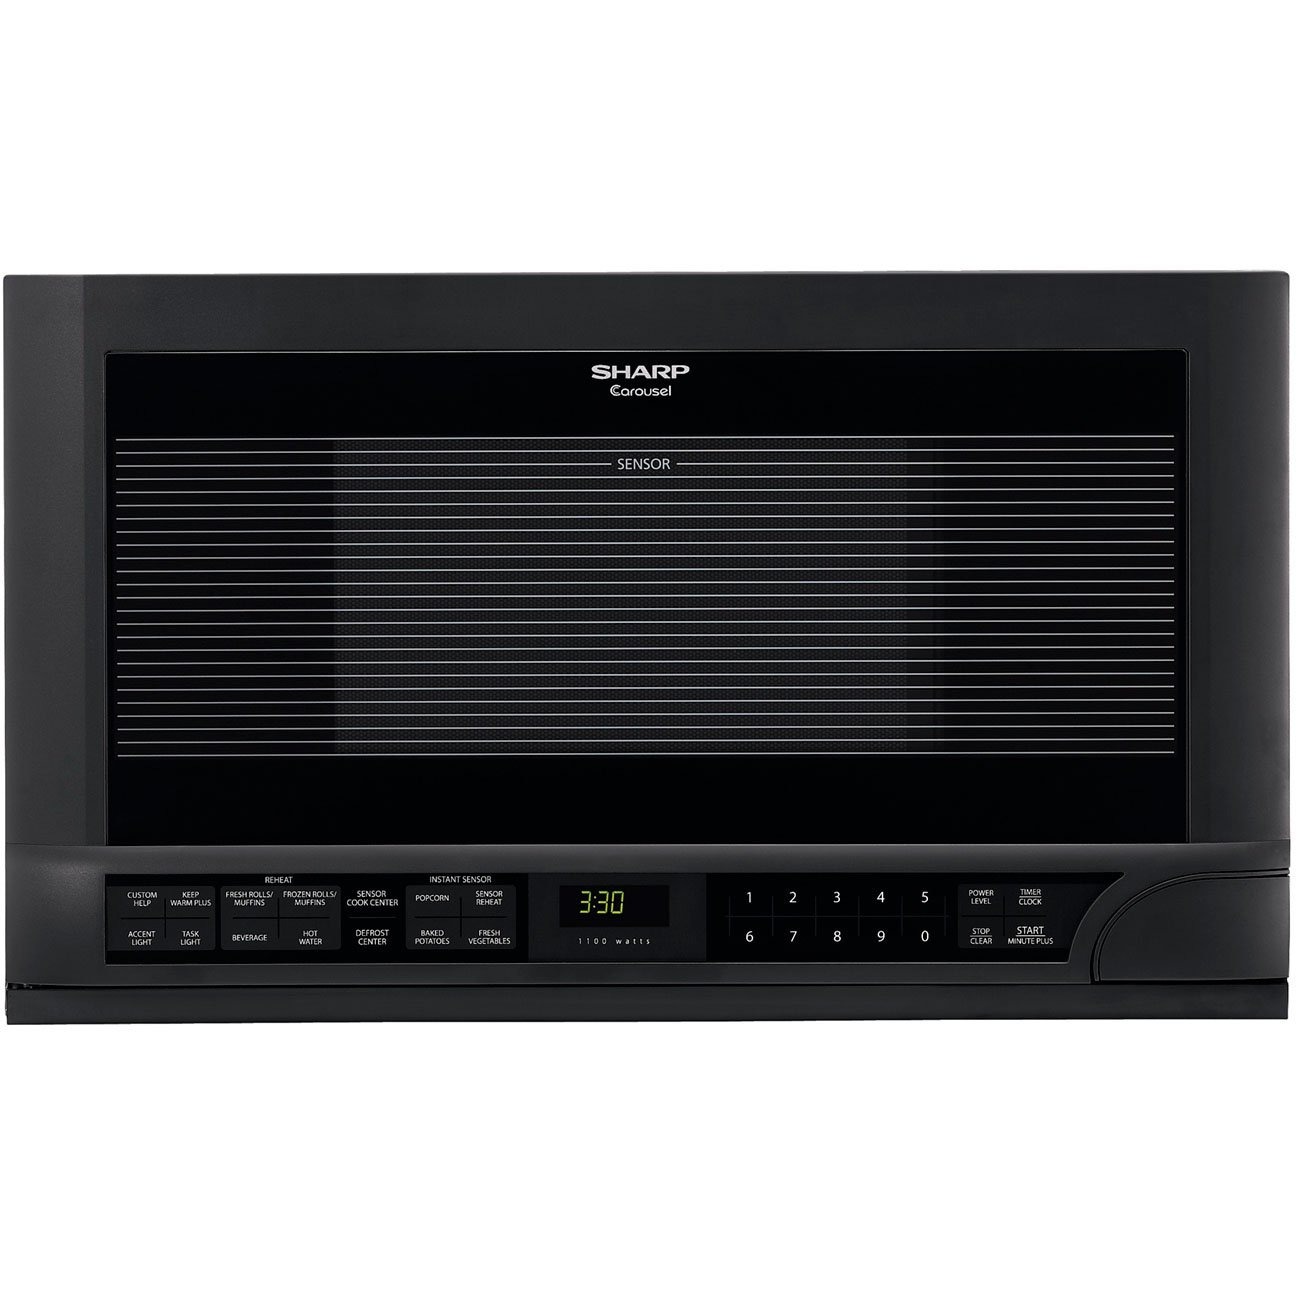 Sharp 1.5 Cubic Foot 1100 Watt Over-the-Counter Microwave Oven (Black)